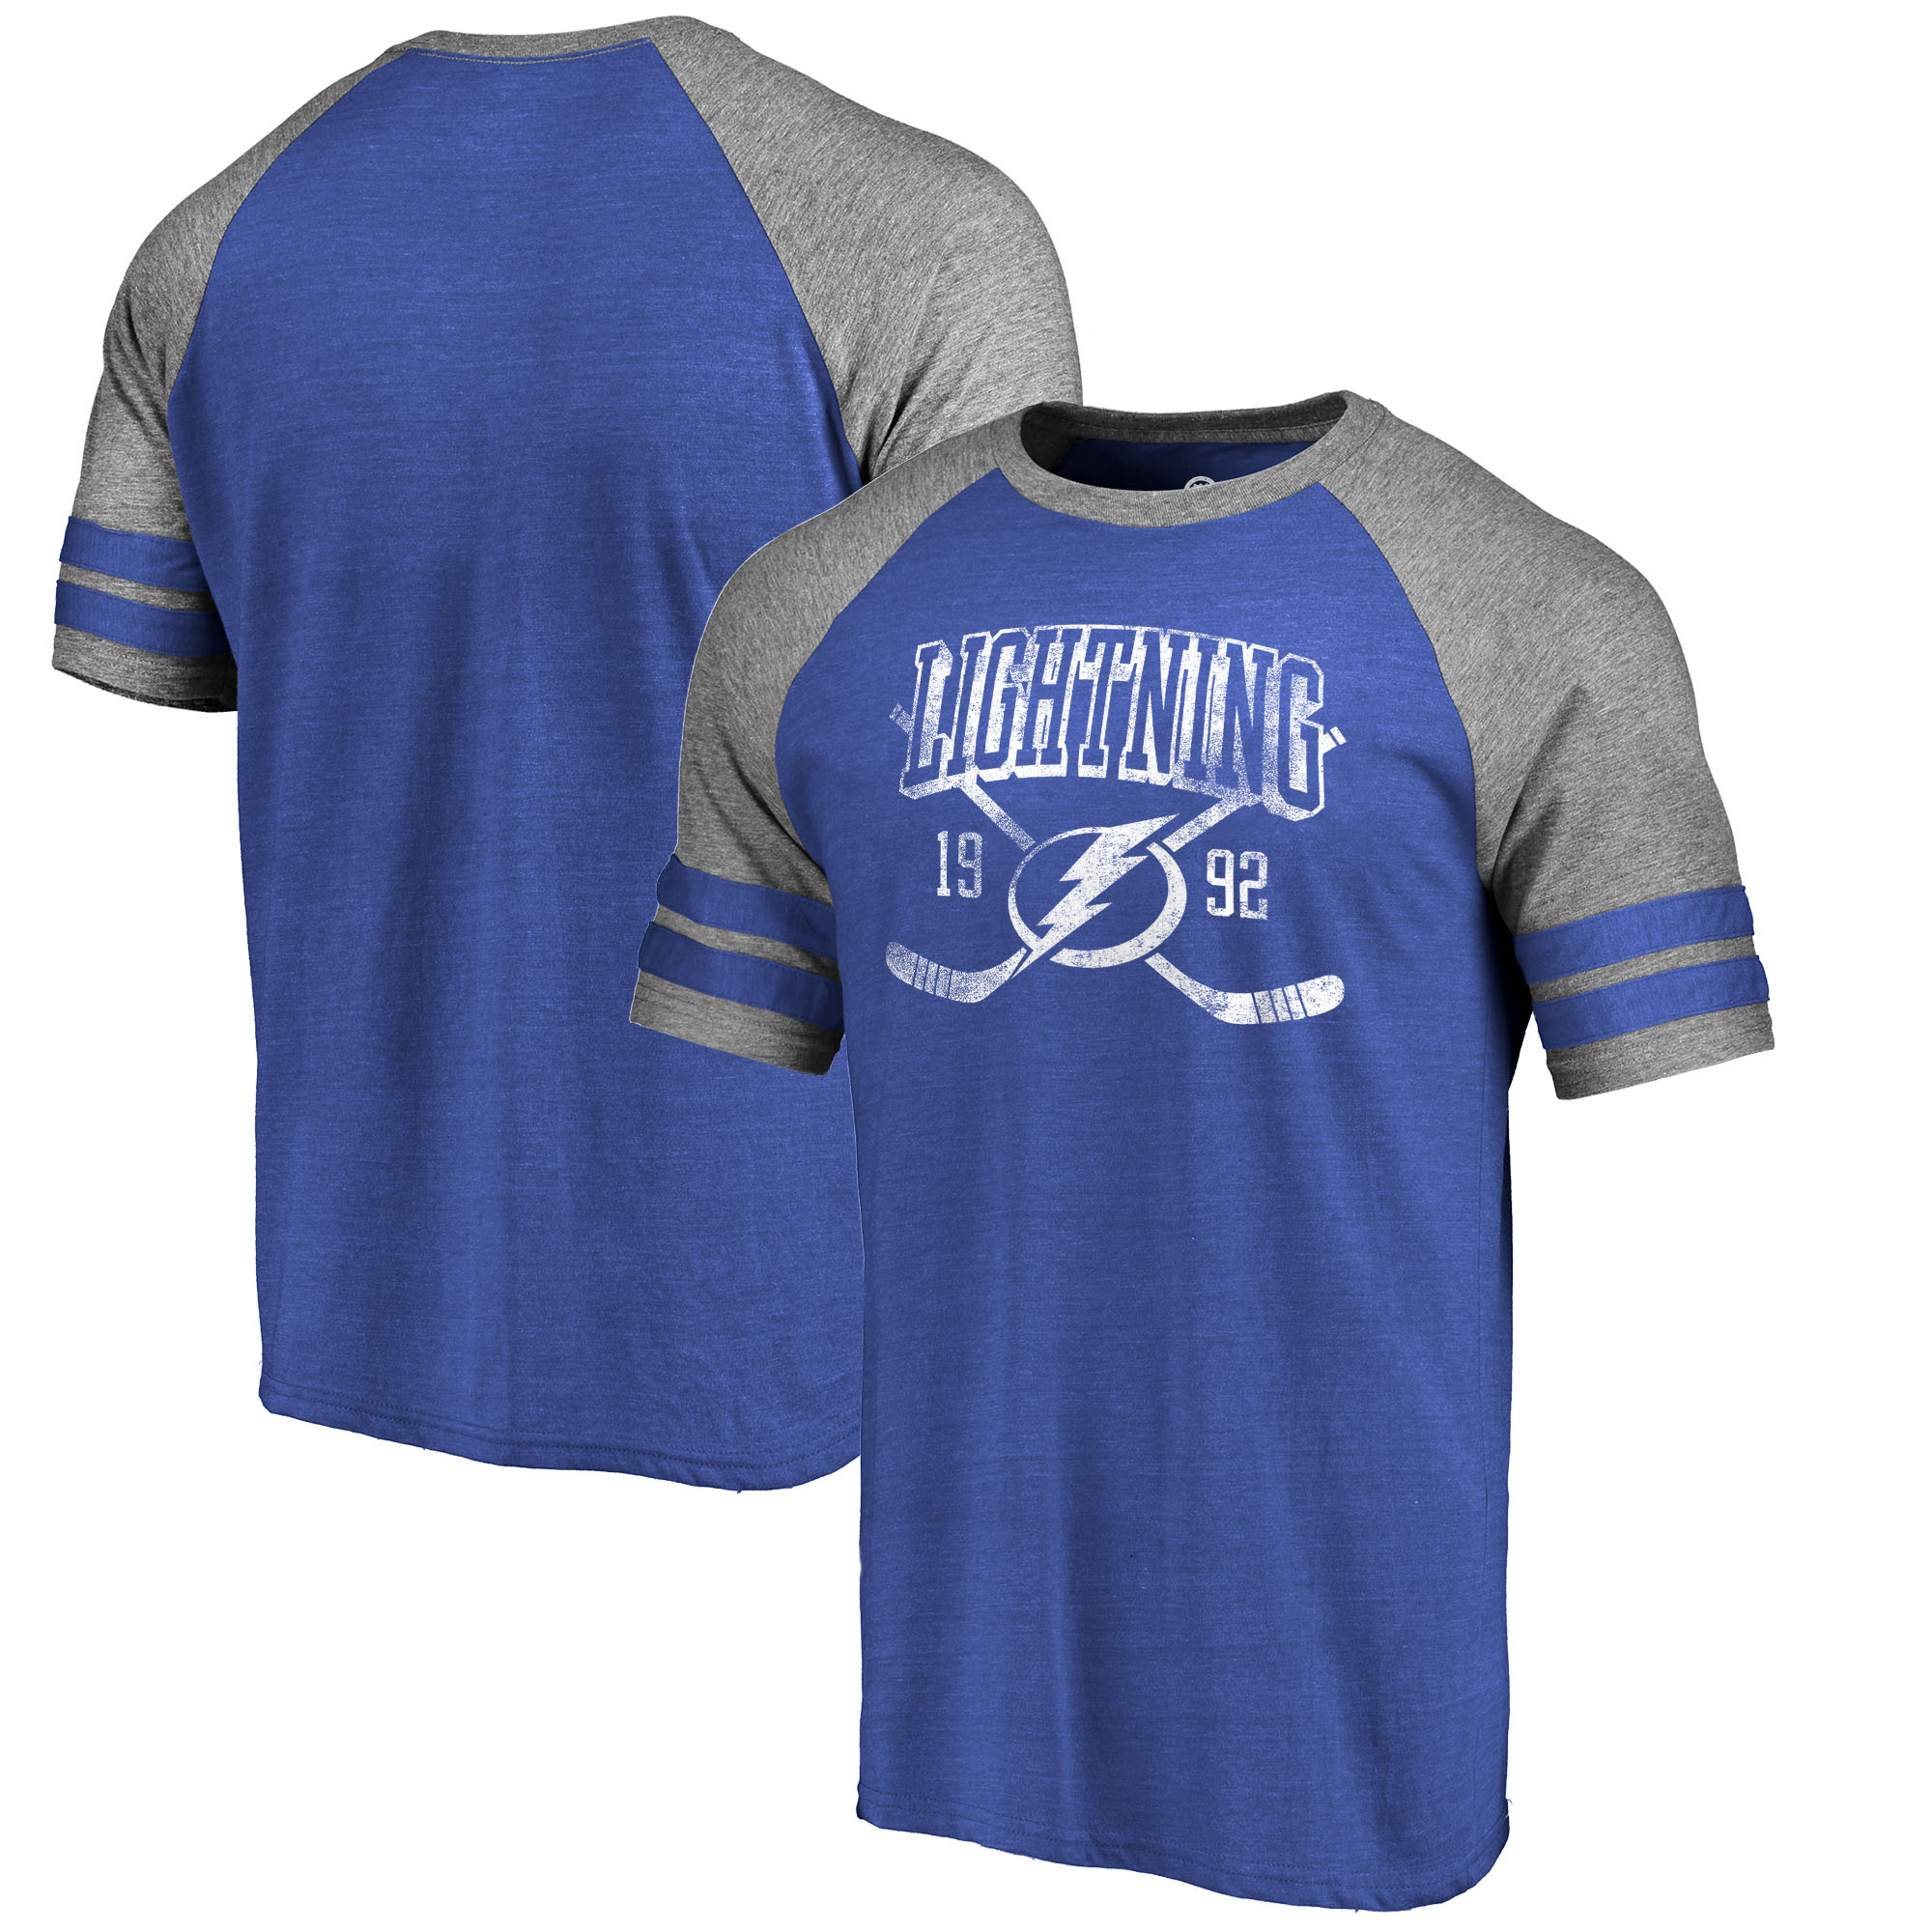 Tampa Bay Lightning Fanatics Branded Vintage Collection Line Shift Tri-Blend Raglan T-Shirt - Royal